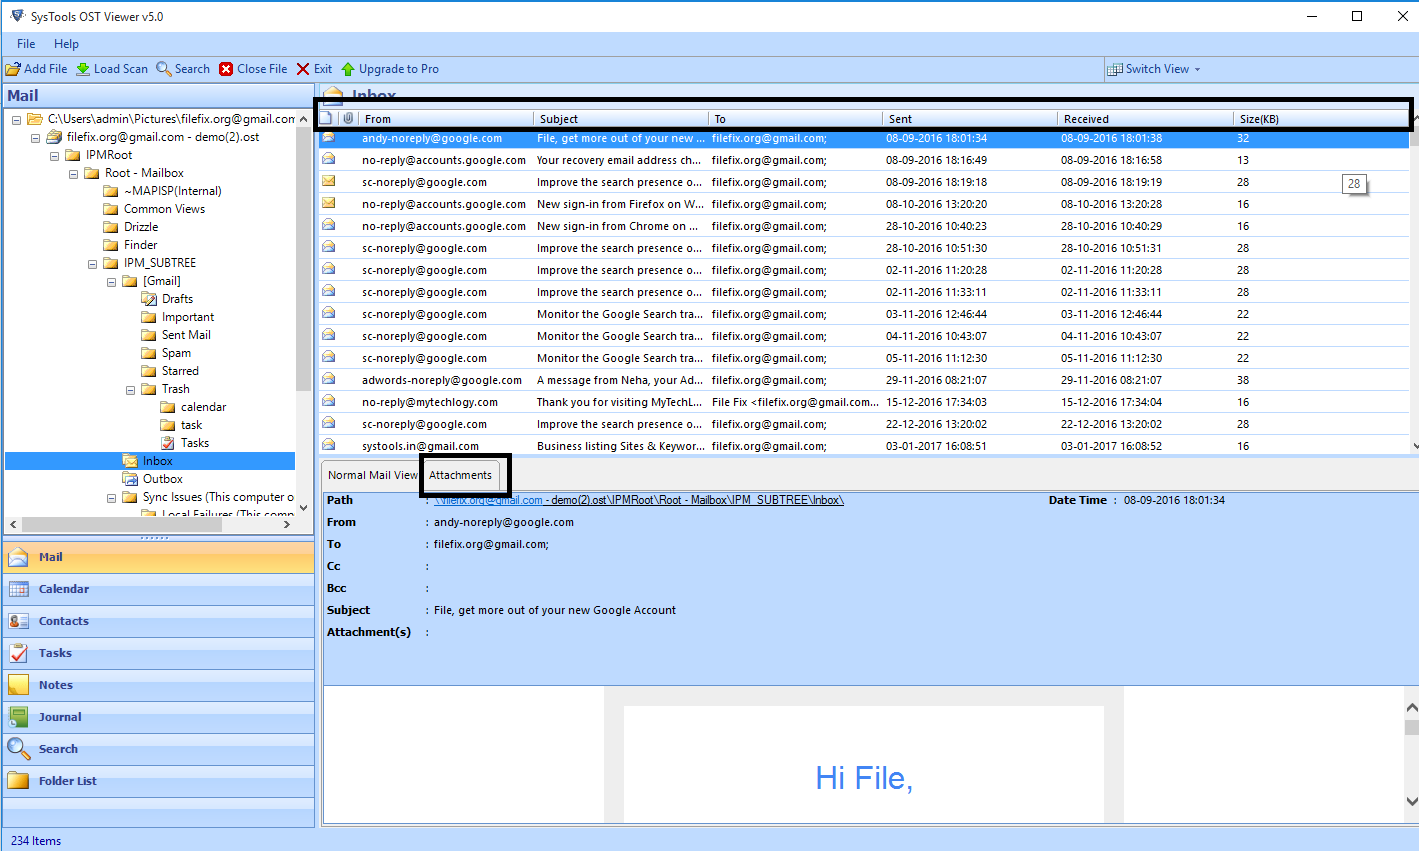 View OST File without Outlook